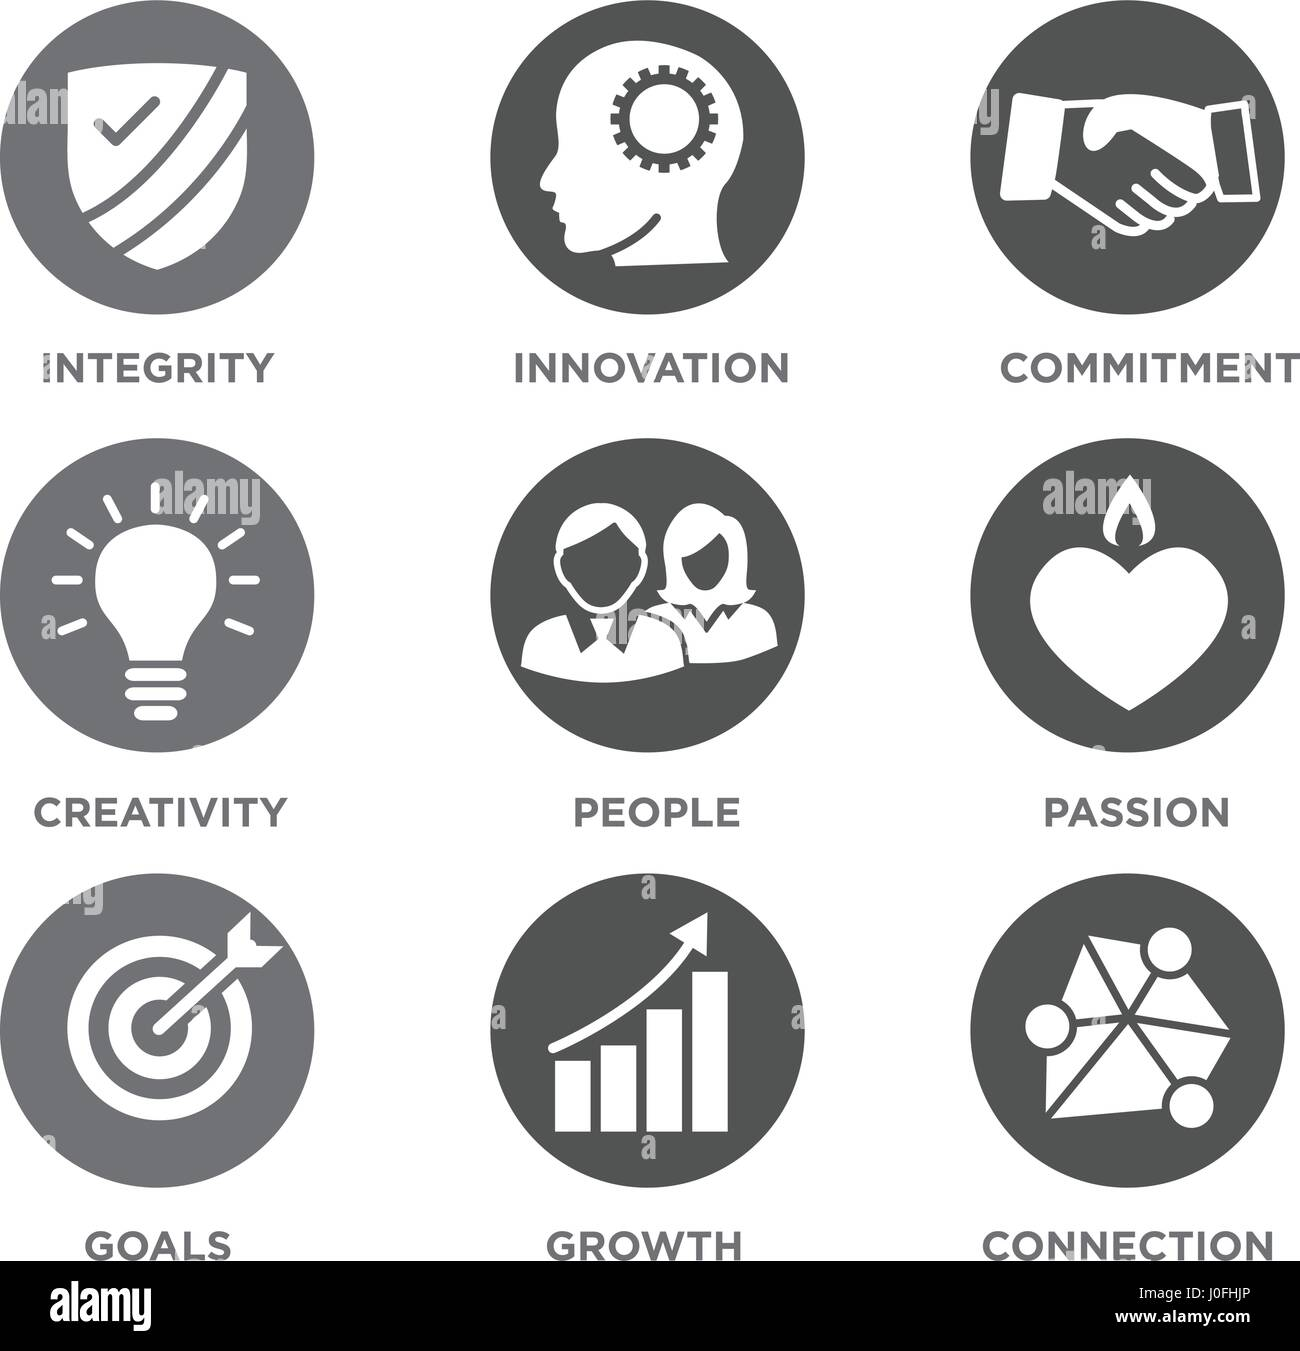 Company core values solid icons for websites or infographics stock company core values solid icons for websites or infographics biocorpaavc Image collections